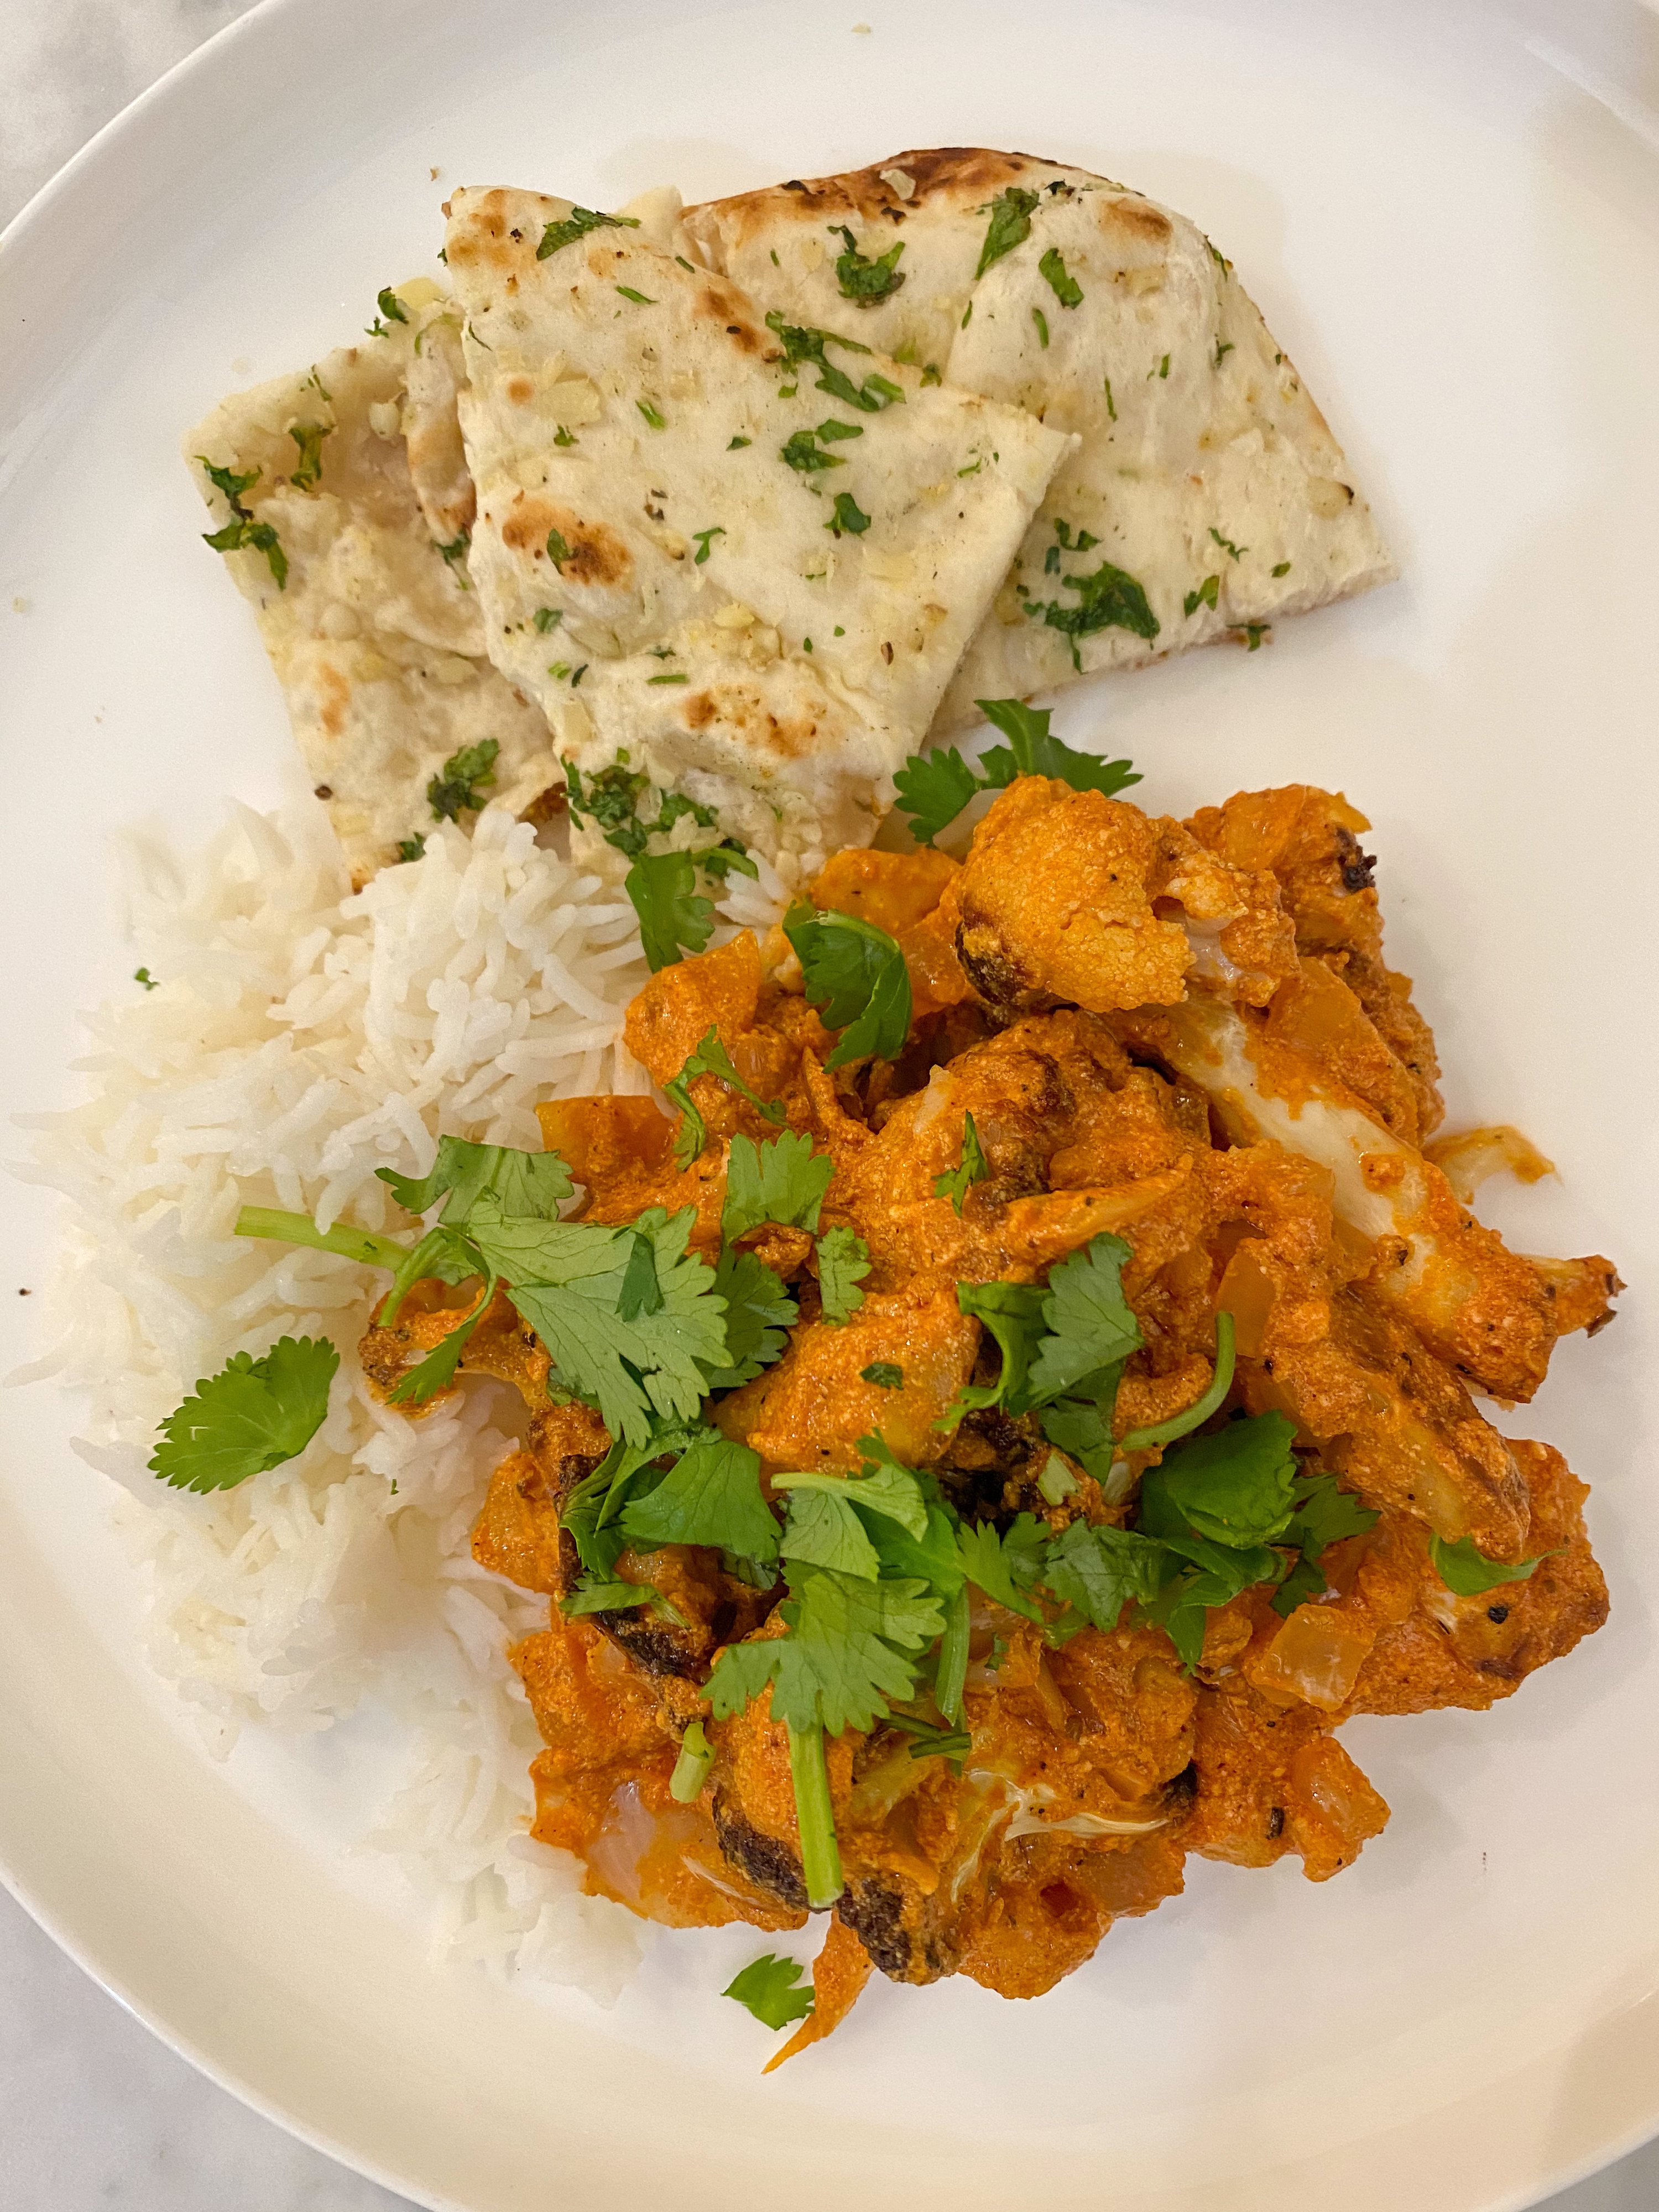 Butter cauliflower with rice and naan.